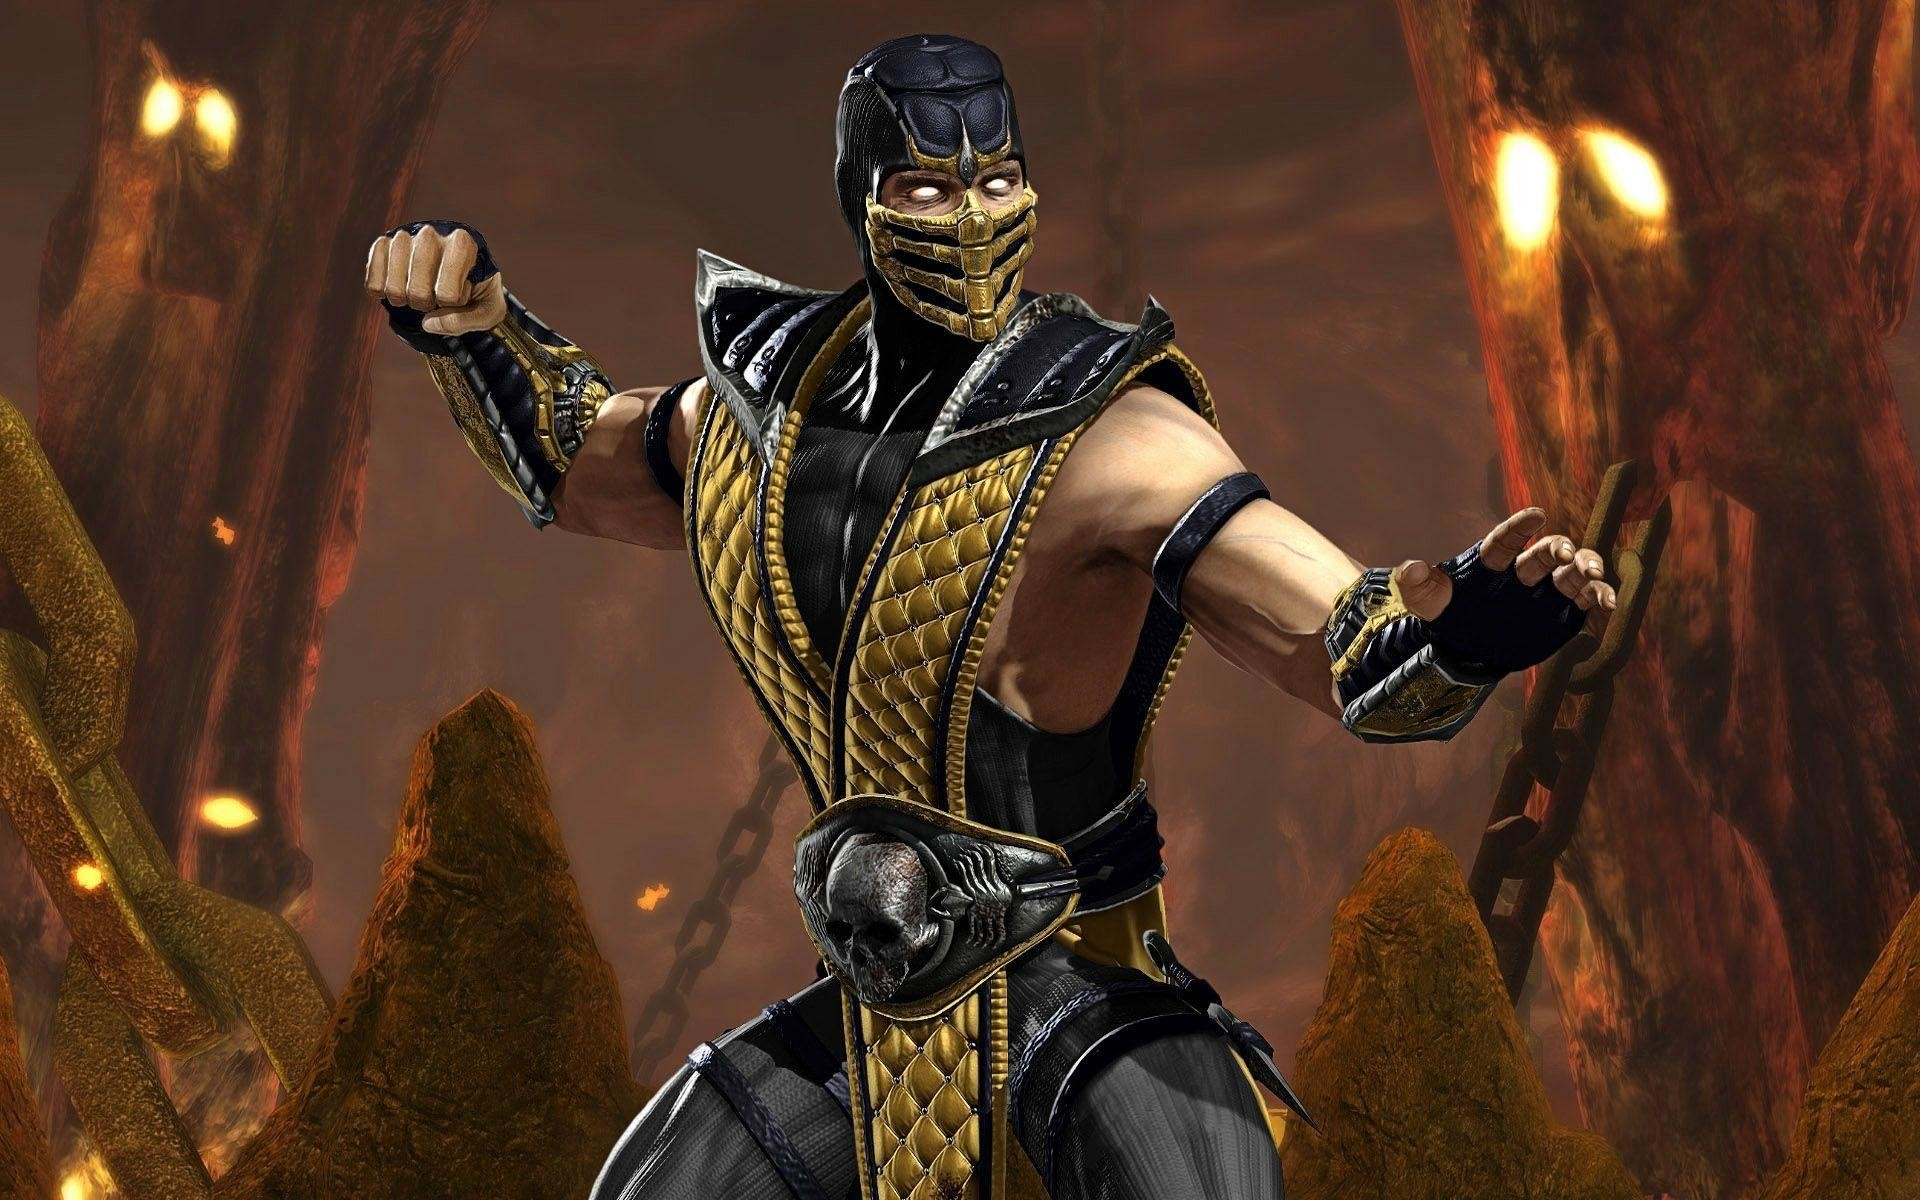 Mortal kombat 9 scorpion wallpaper 72 images - Mortal kombat scorpion wallpaper ...